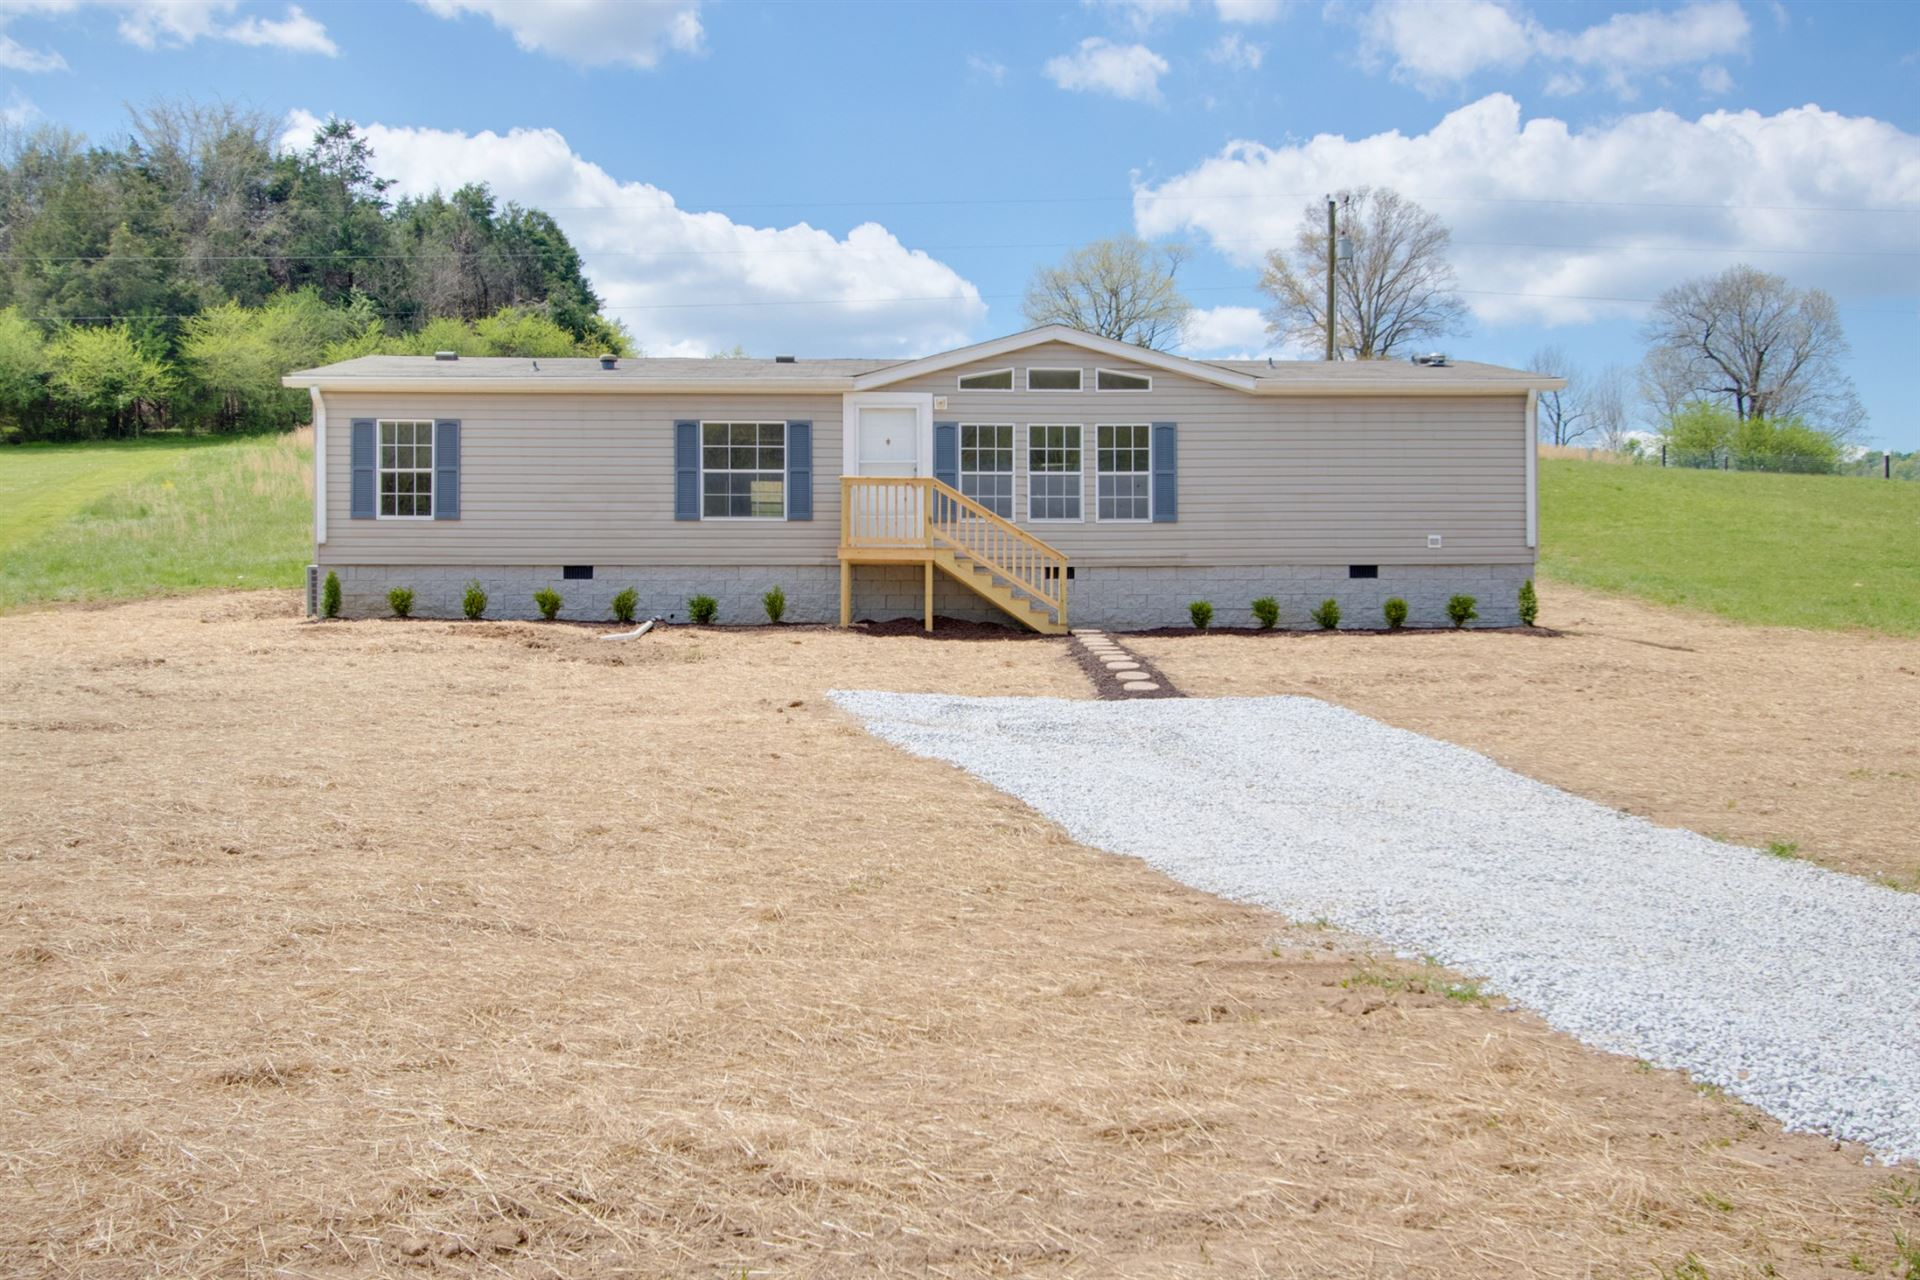 24 Young Rd, Buffalo Valley, TN 38548 - MLS#: 2240186